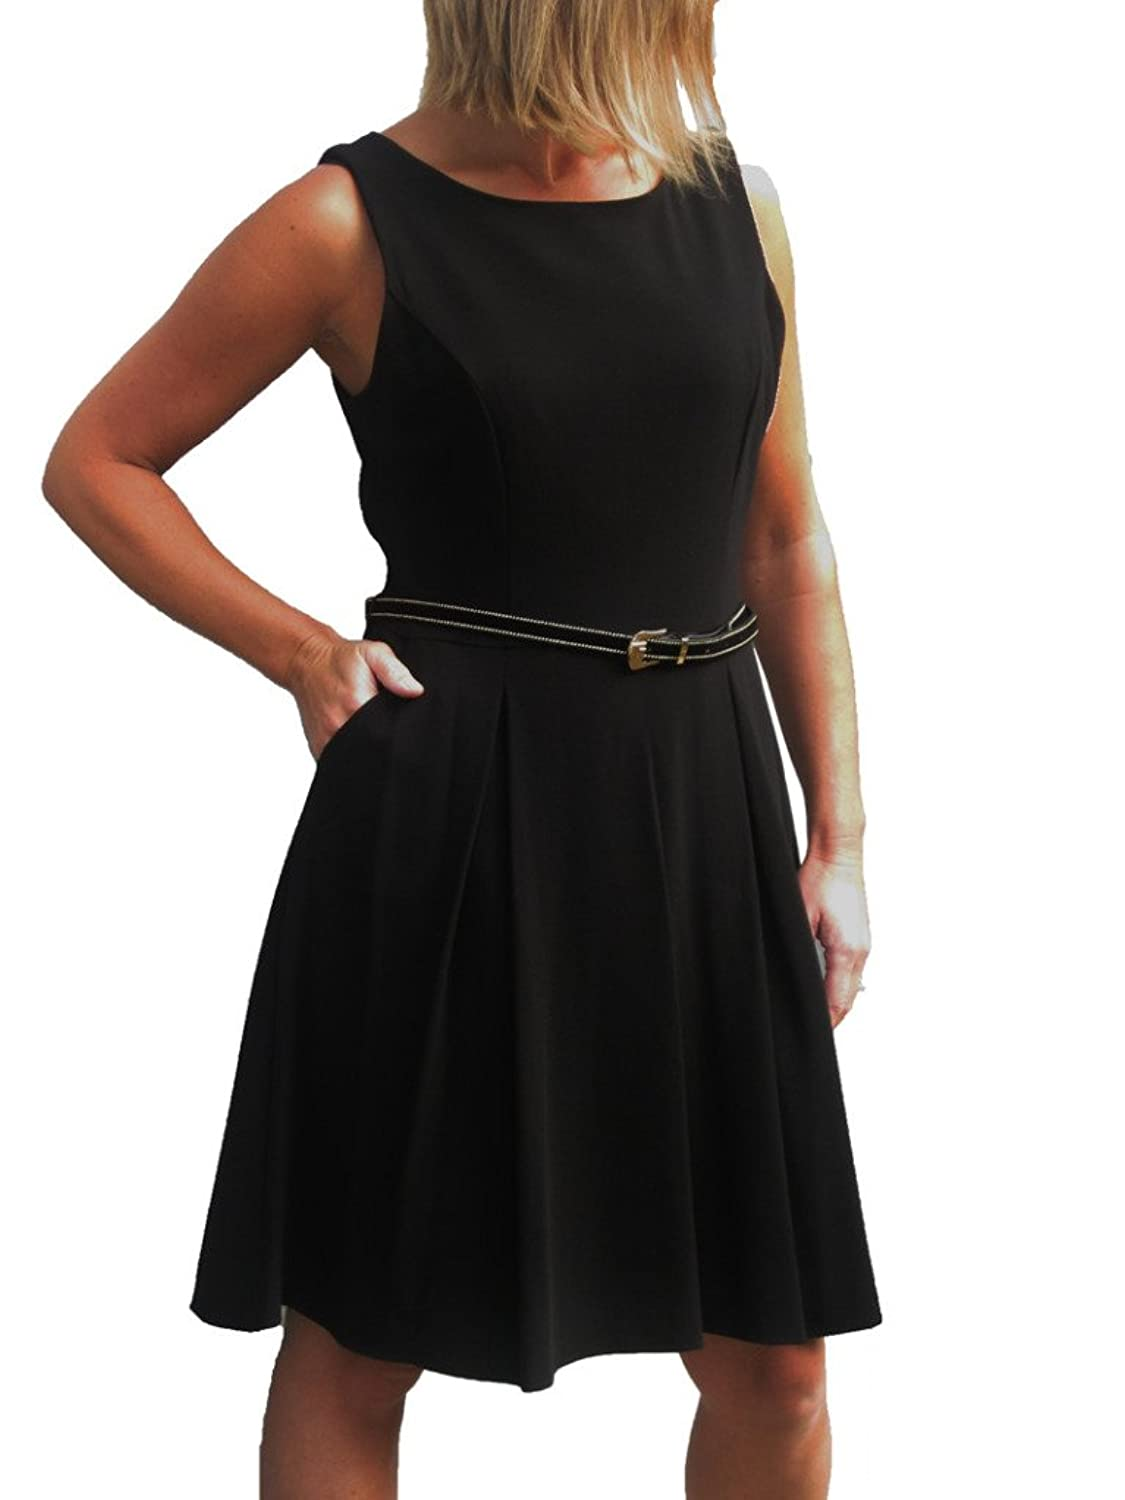 ICE (3955) 60's skater style dress pleated skirt with belt black sizes 8-18